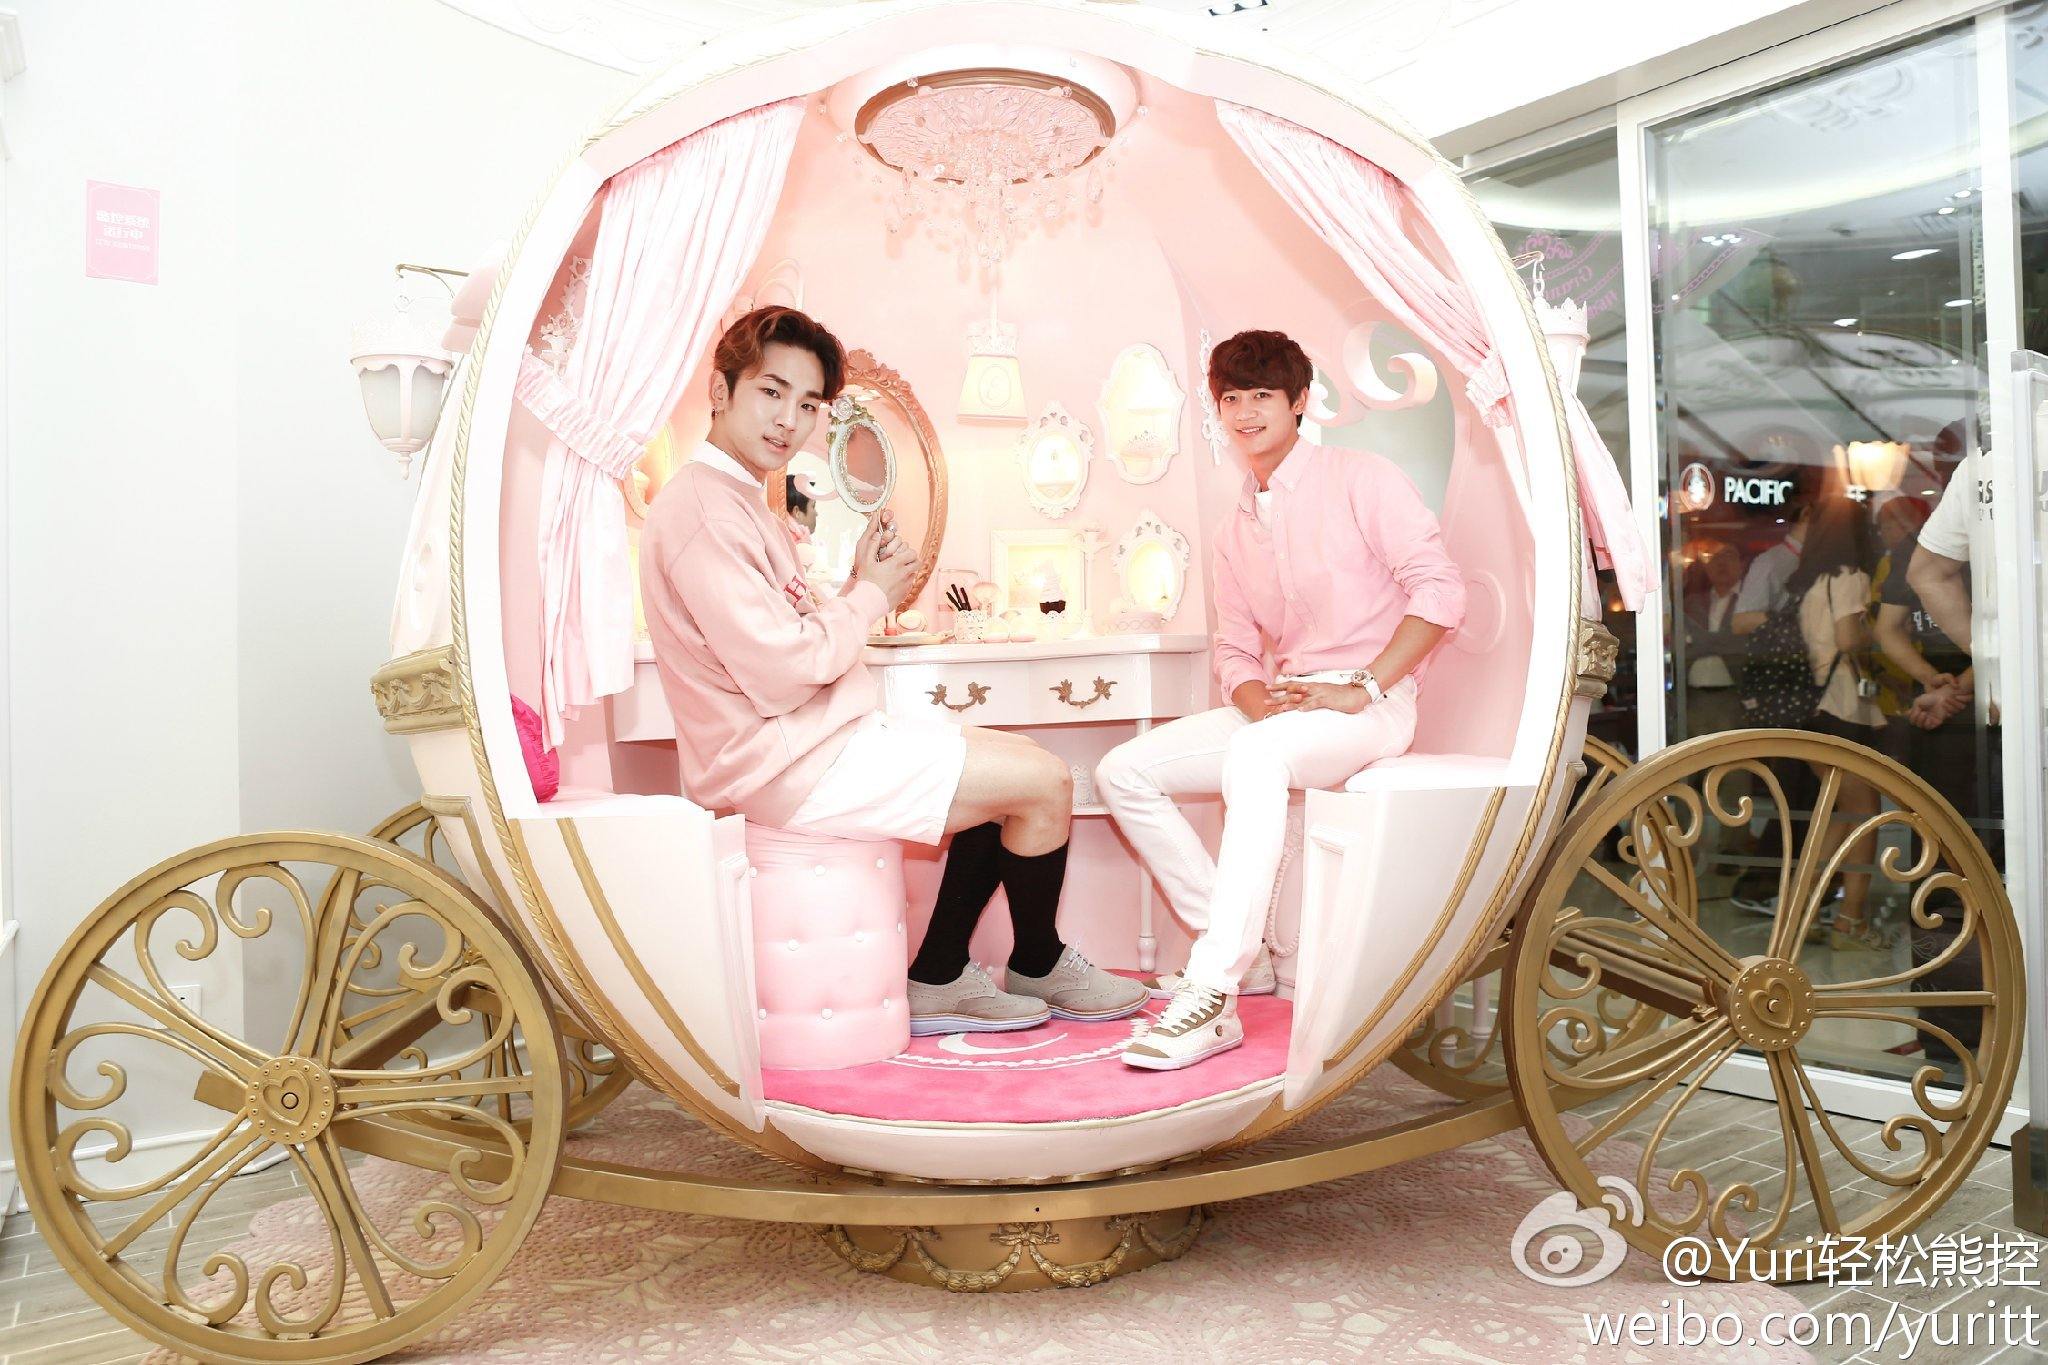 Etude House Images ÉTUDE HOUSE FLAGSHIP STORE OPENINGu0027 IN SHANGHAI HD  Wallpaper And Background Photos